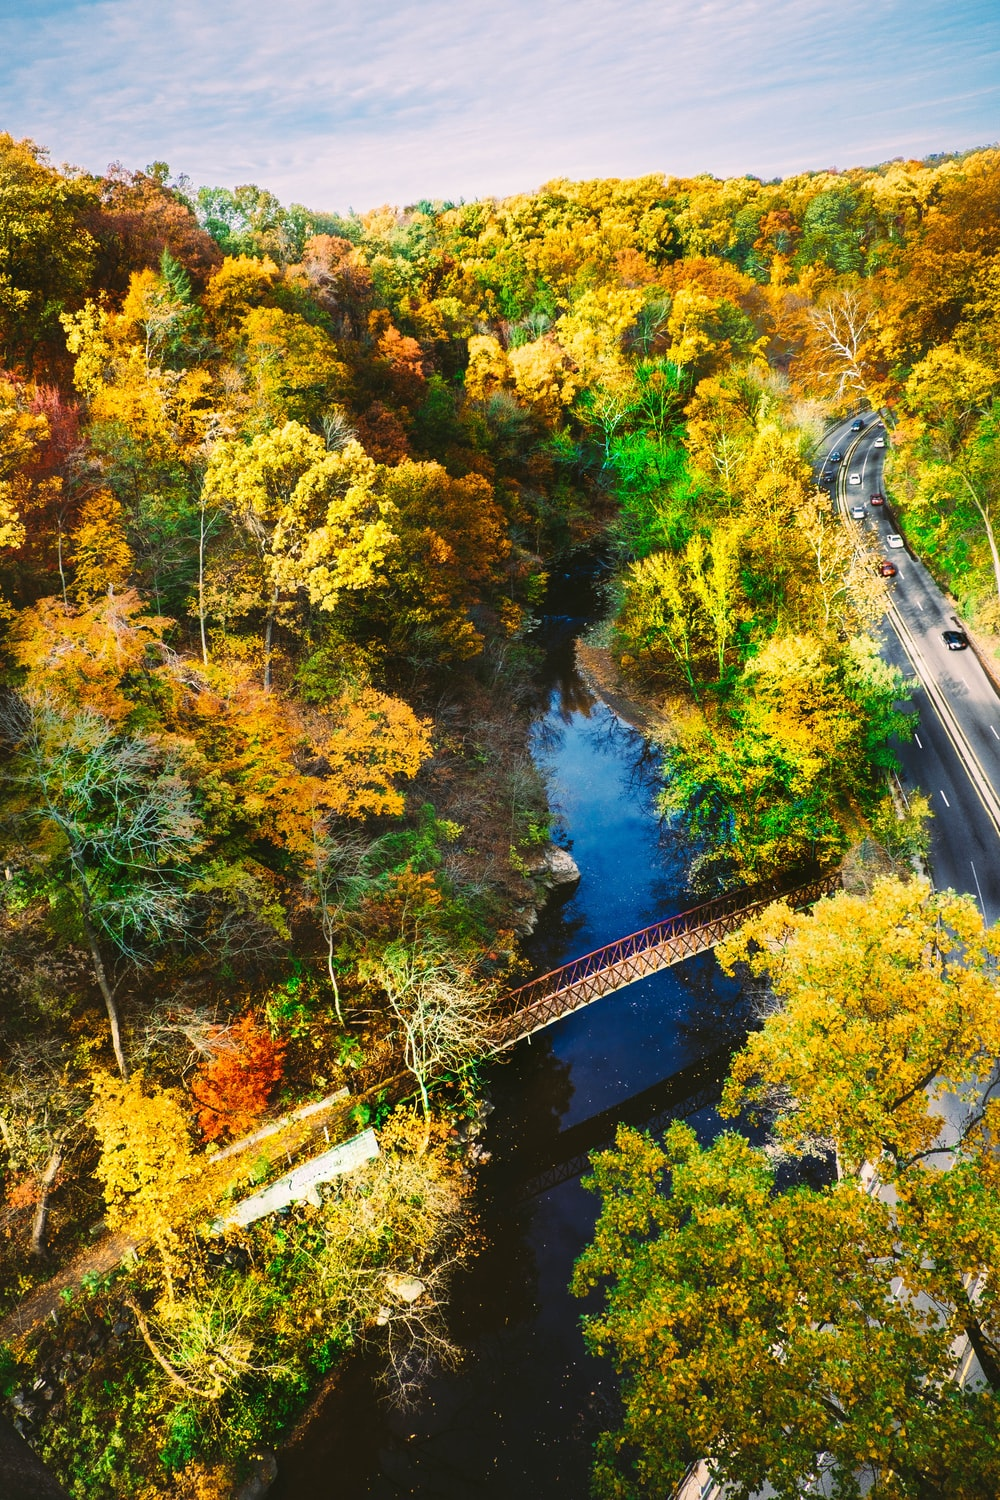 aerial photography of brown metal bridge surrounded with trees while cars on road